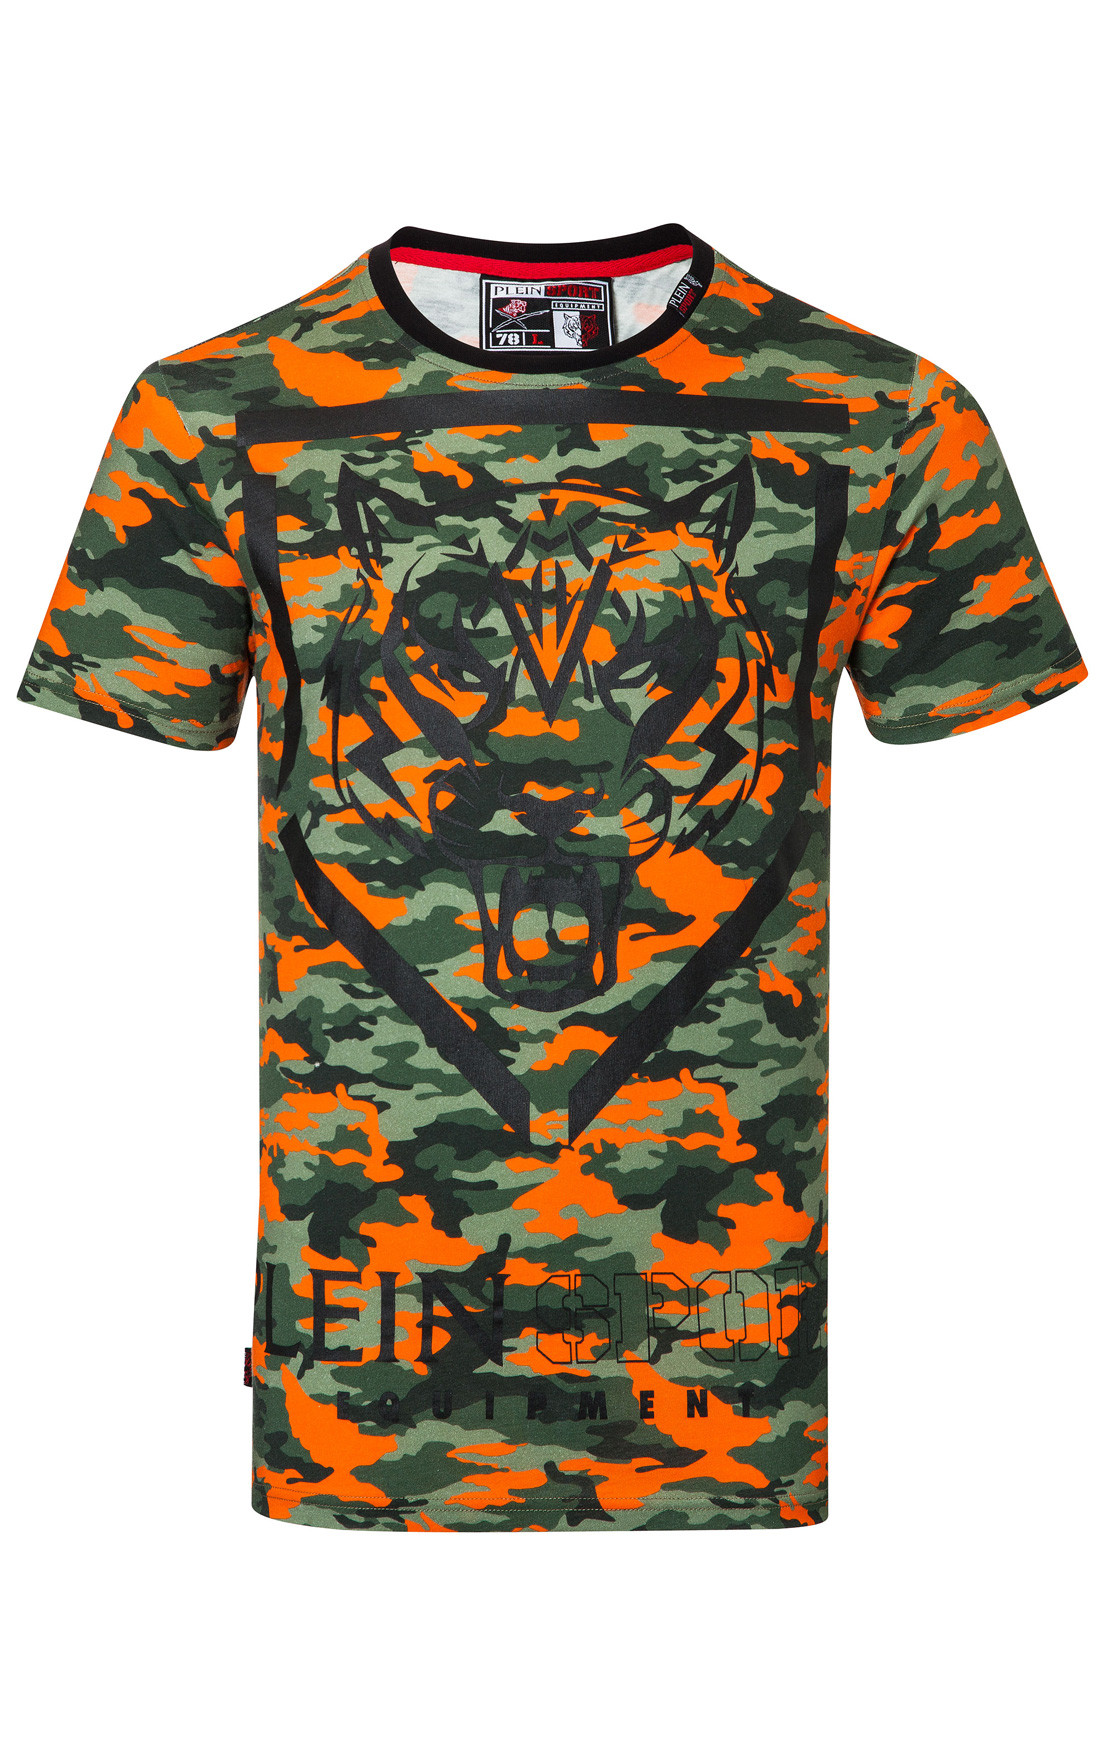 Plein sport mens space orange camo t shirt plein sport for Camouflage t shirt design